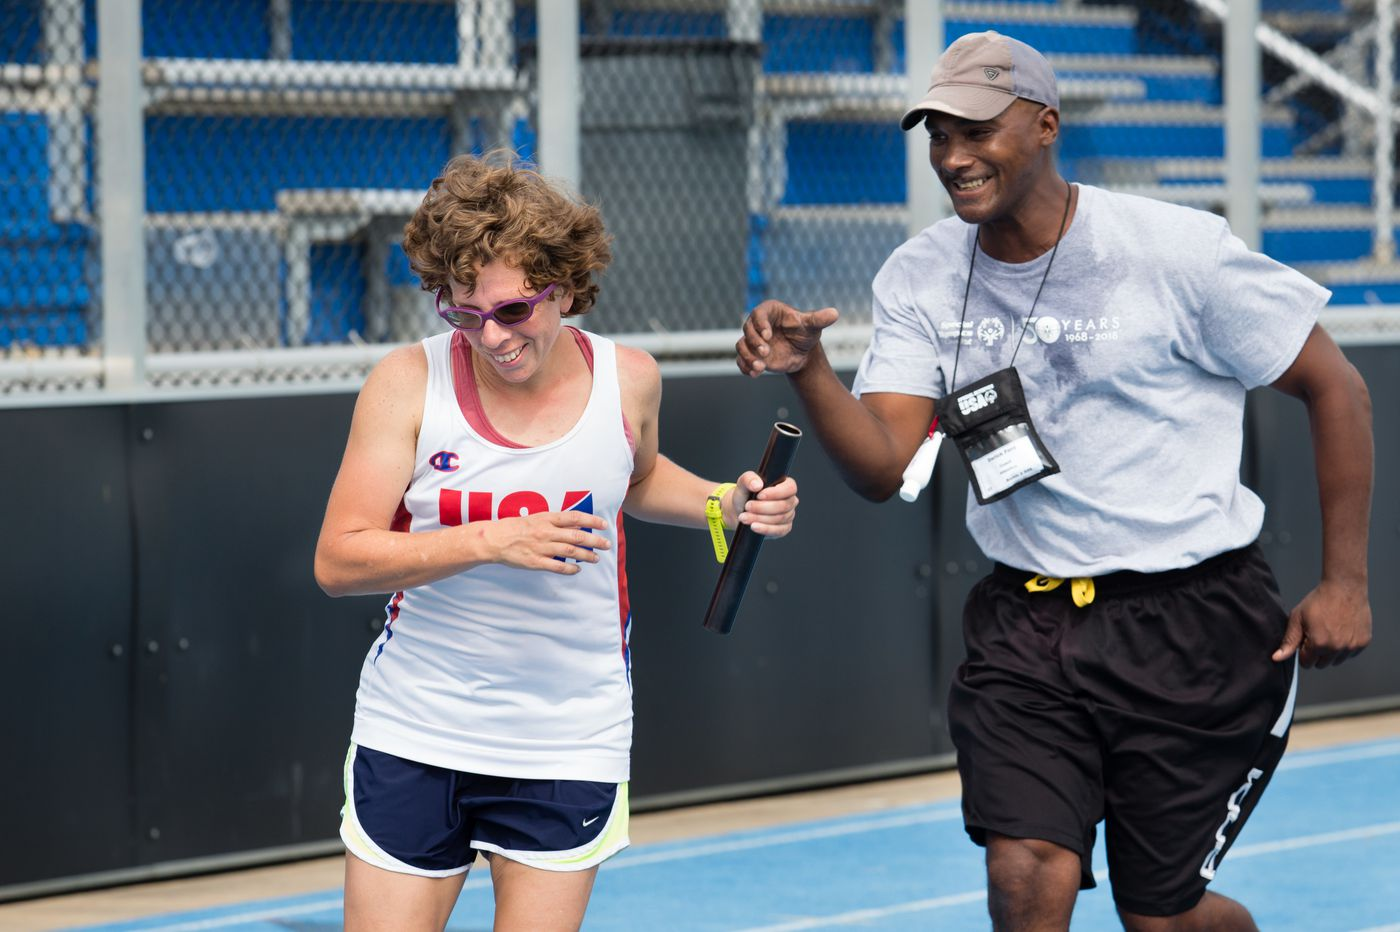 Special Olympics athletes stop in Delaware to prepare for World Games